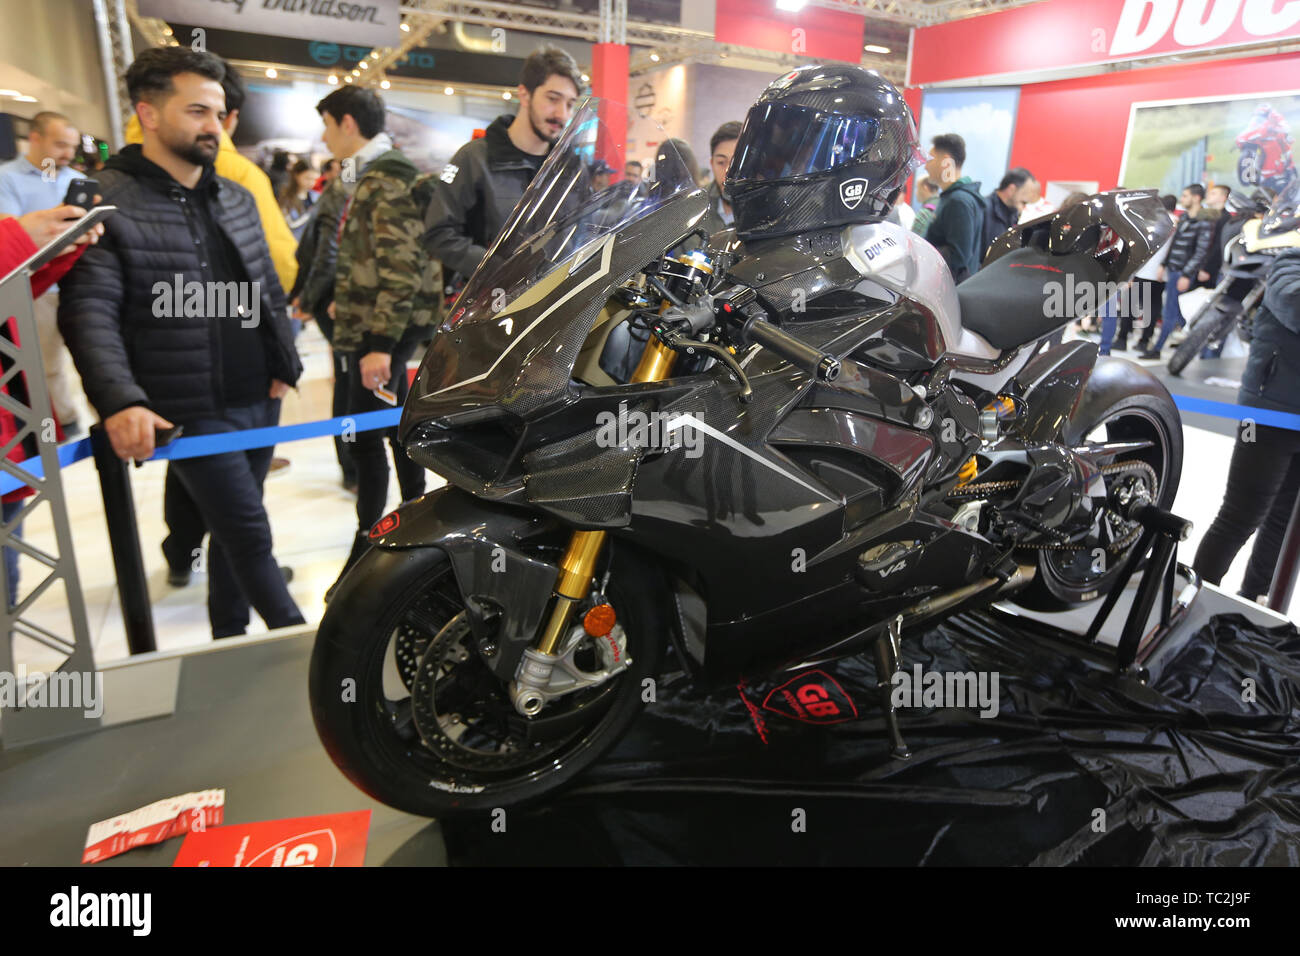 ISTANBUL, TURKEY - FEBRUARY 23, 2019: Ducati Panigale V4 on display at Motobike Istanbul in Istanbul Exhibition Center - Stock Image